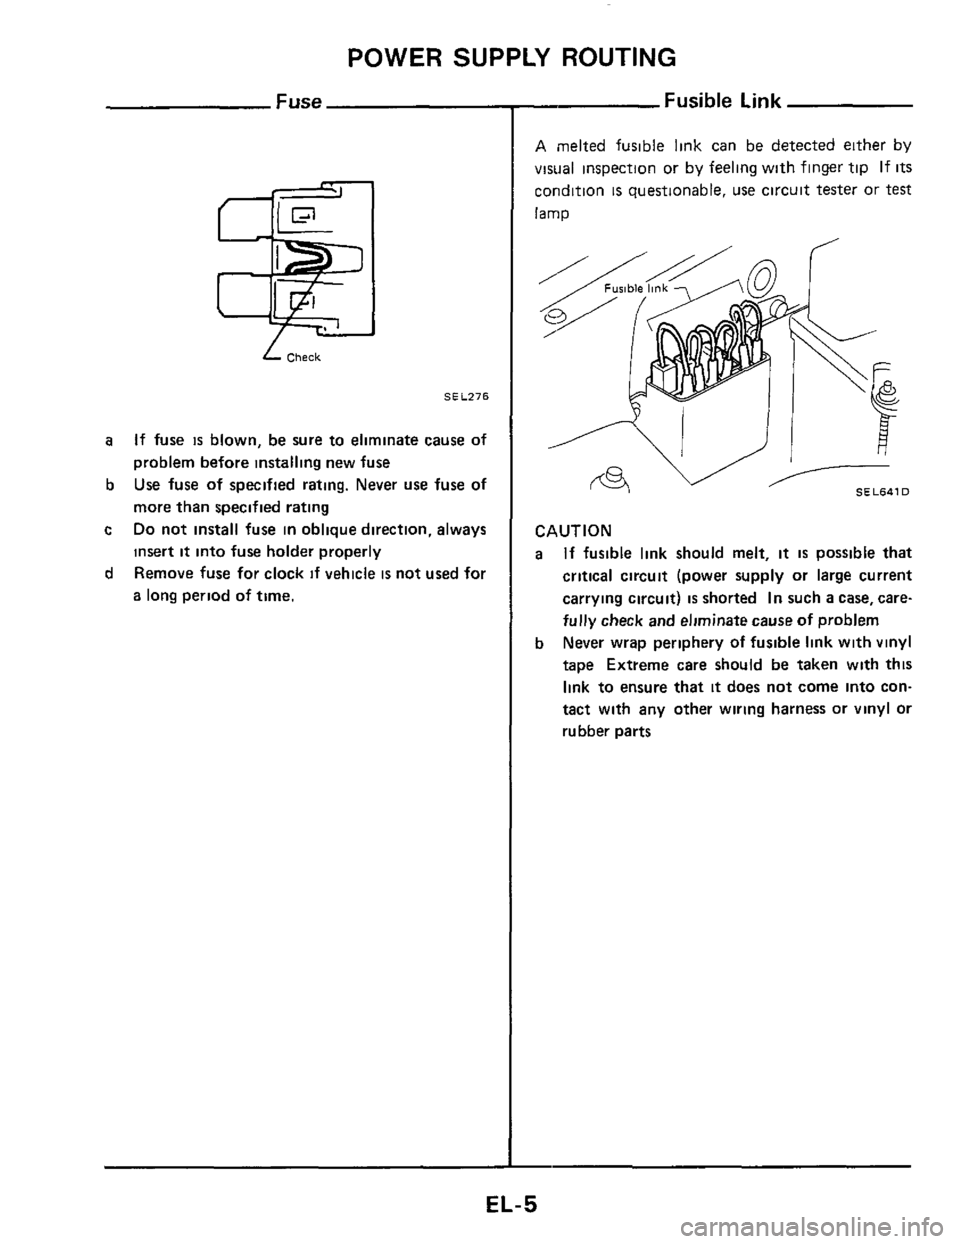 NISSAN 300ZX 1984 Z31 Electrical System Workshop Manual, Page 5